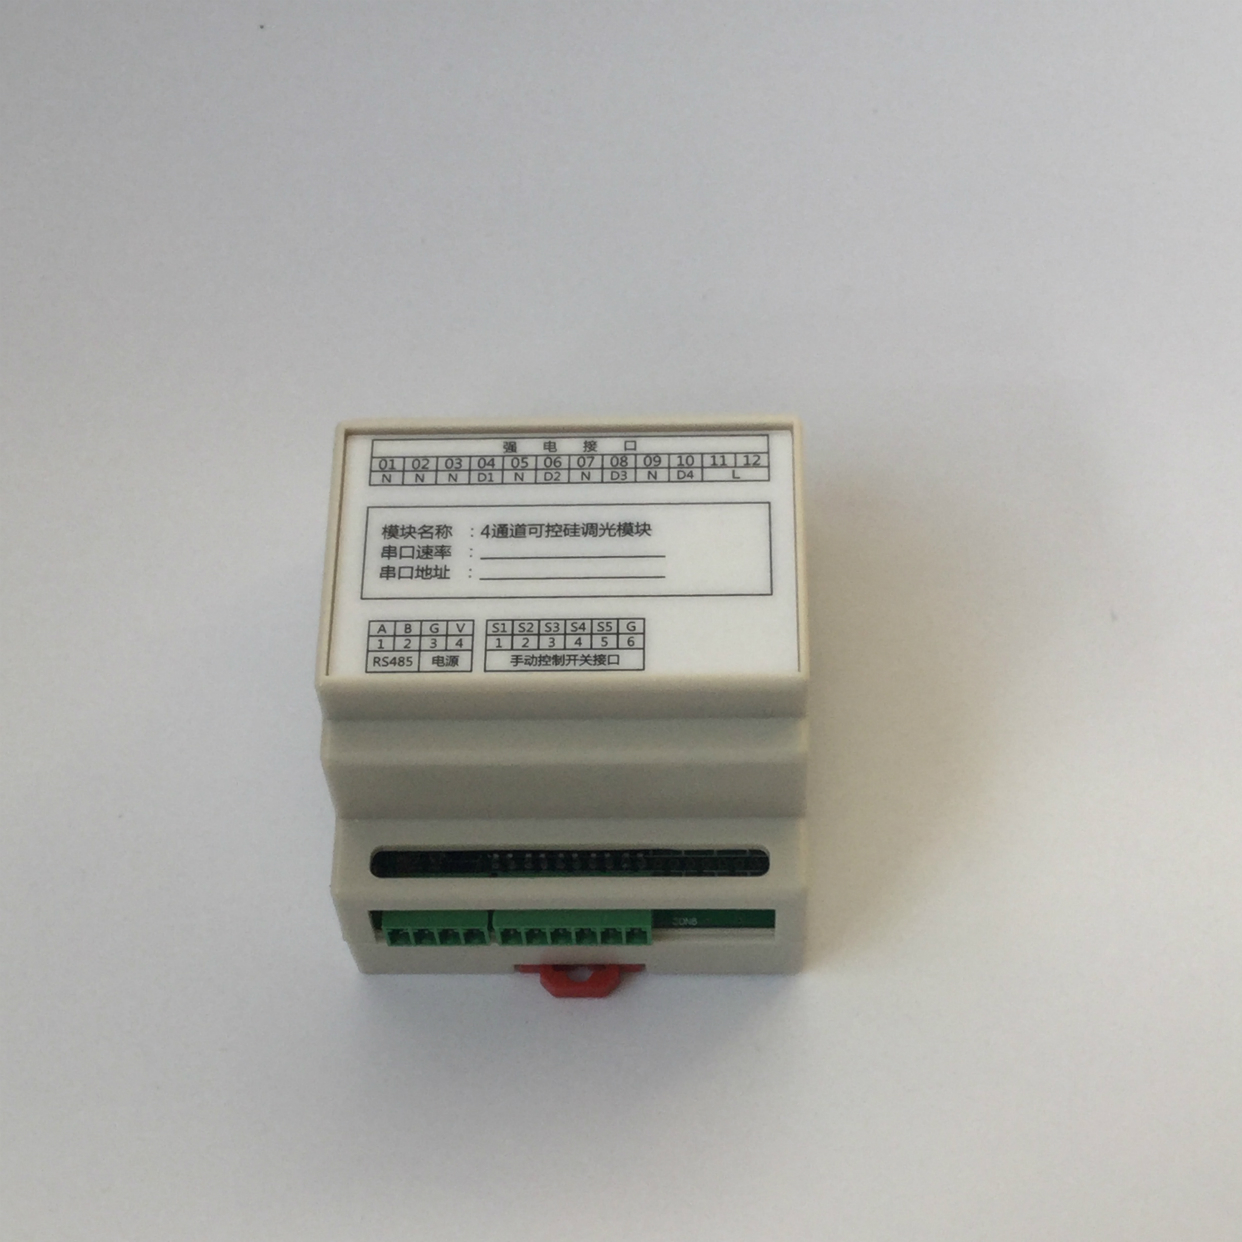 все цены на 4 way thyristor dimming module RS485 Modbus онлайн